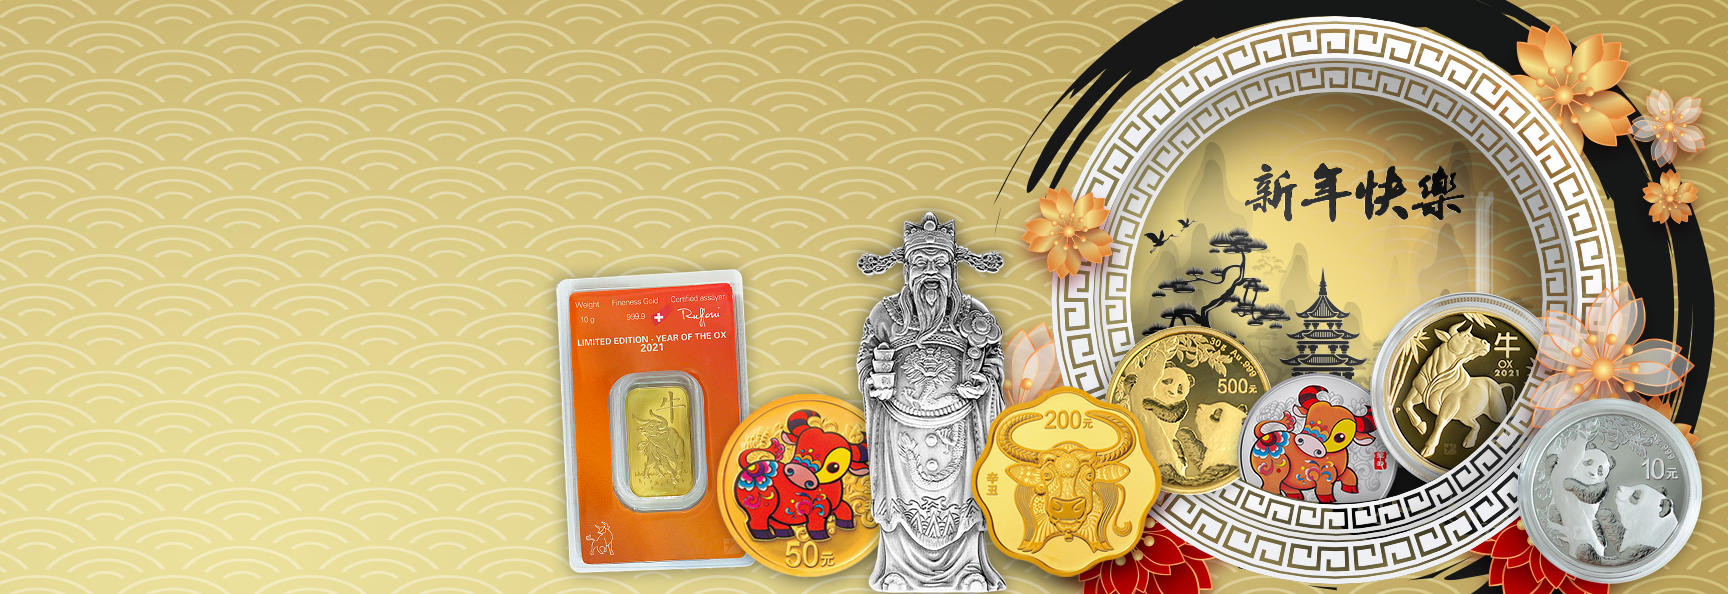 Shop Your Lunar New Year Gifts with BullionStar!